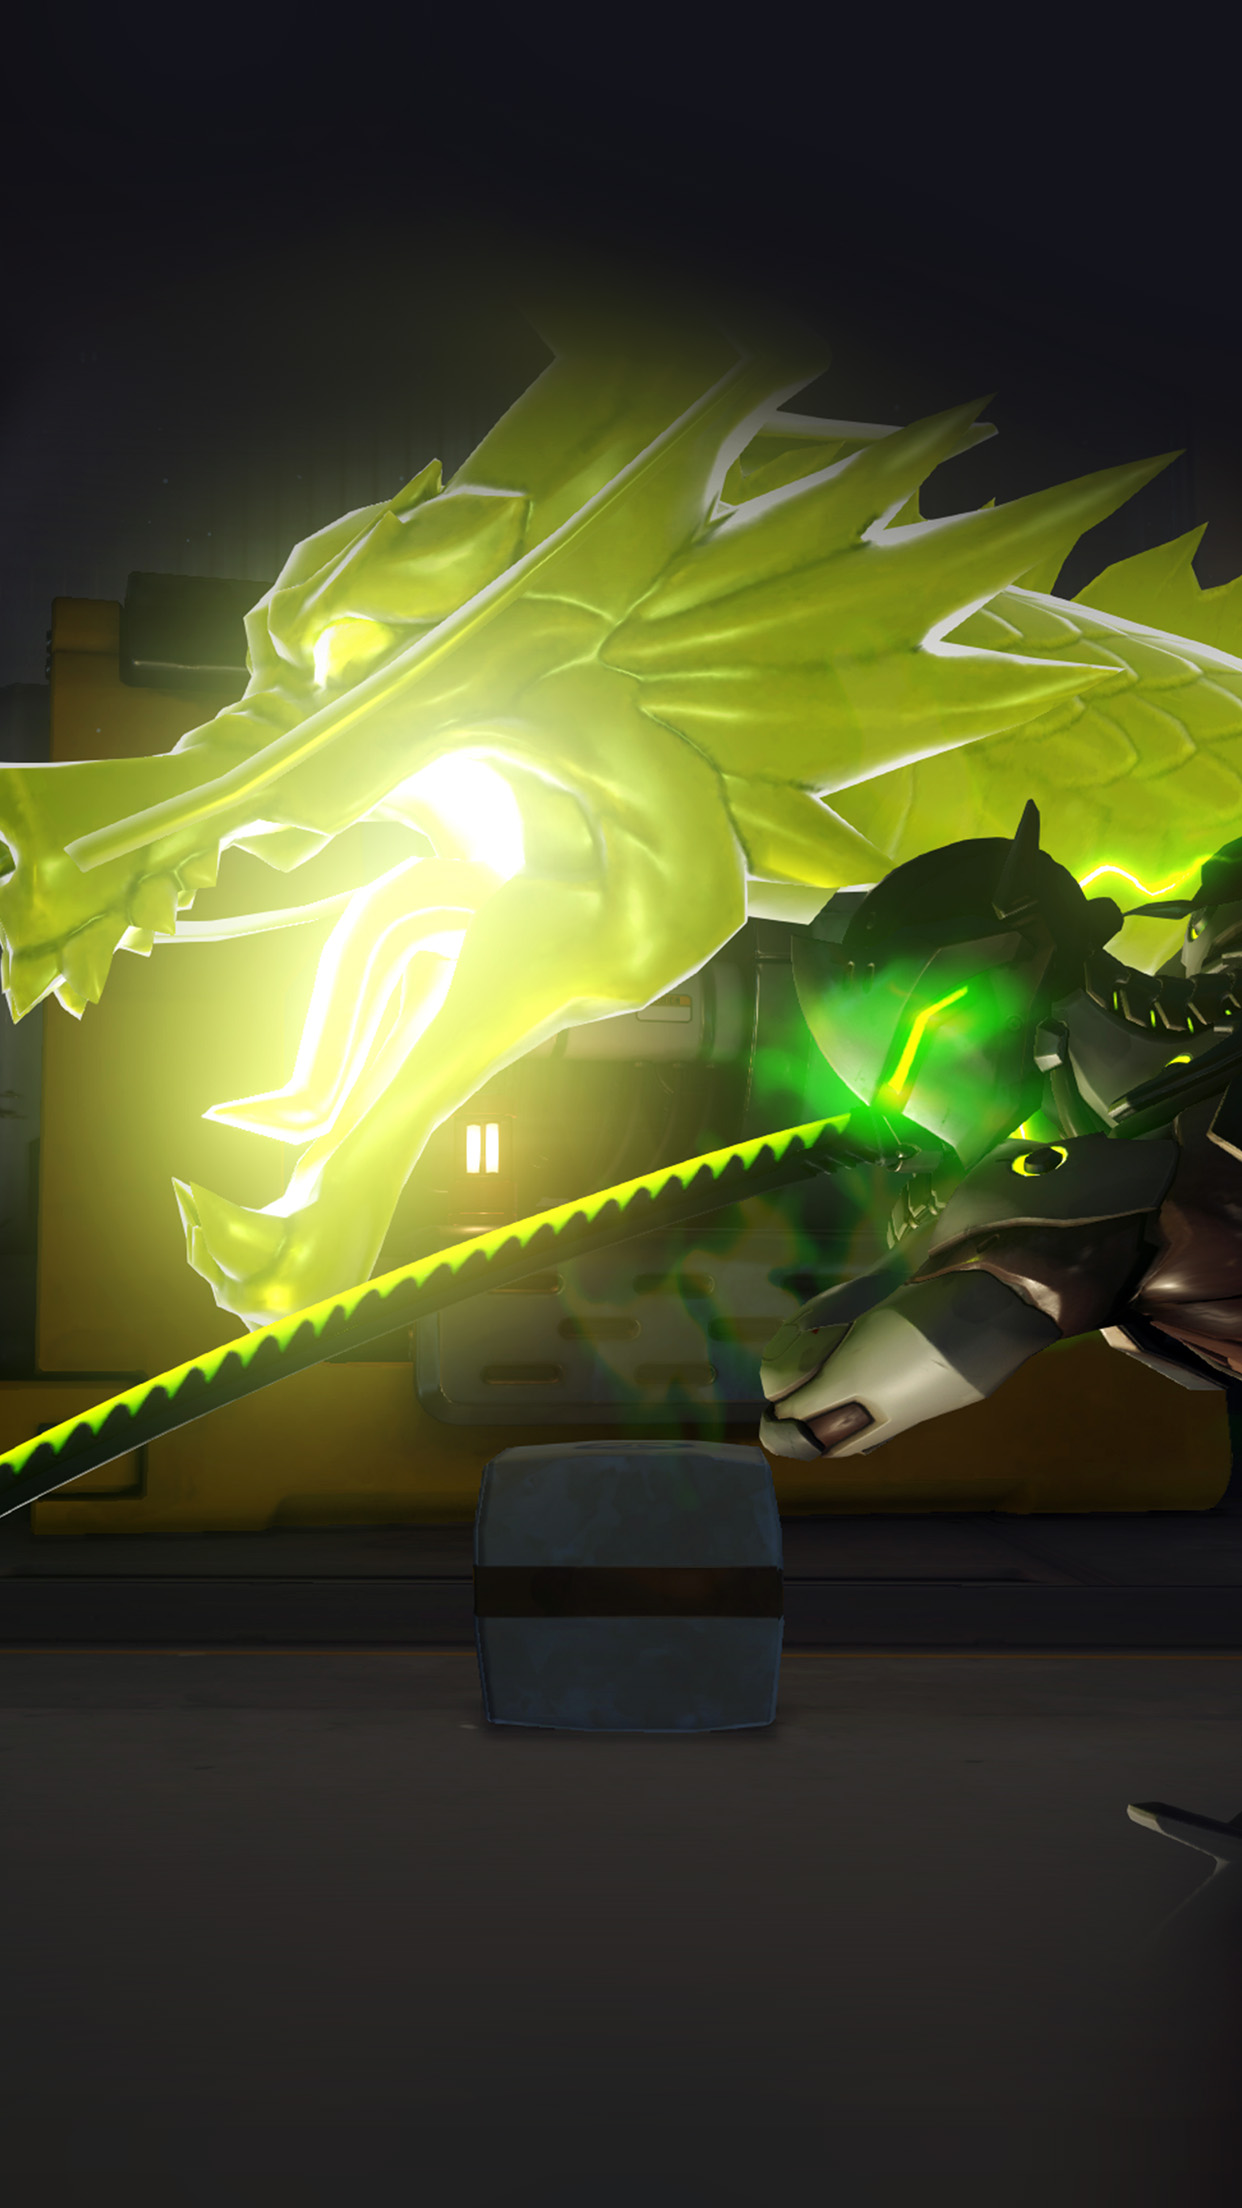 Au69 Genji Overwatch Dragon Anime Illustration Art Wallpaper